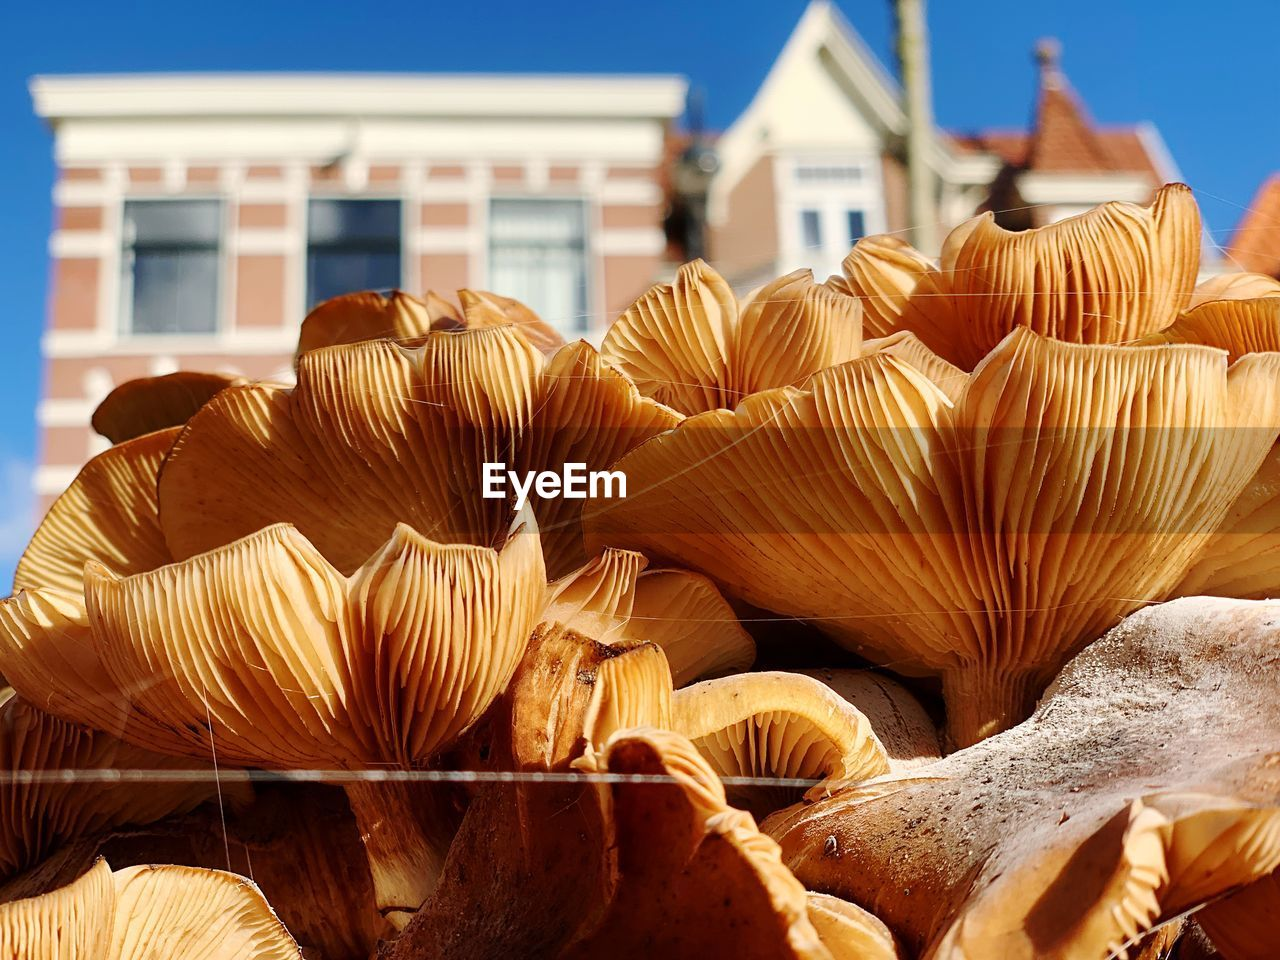 no people, day, architecture, close-up, nature, fungus, food, building exterior, built structure, sunlight, vegetable, focus on foreground, mushroom, growth, large group of objects, freshness, food and drink, wellbeing, abundance, retail